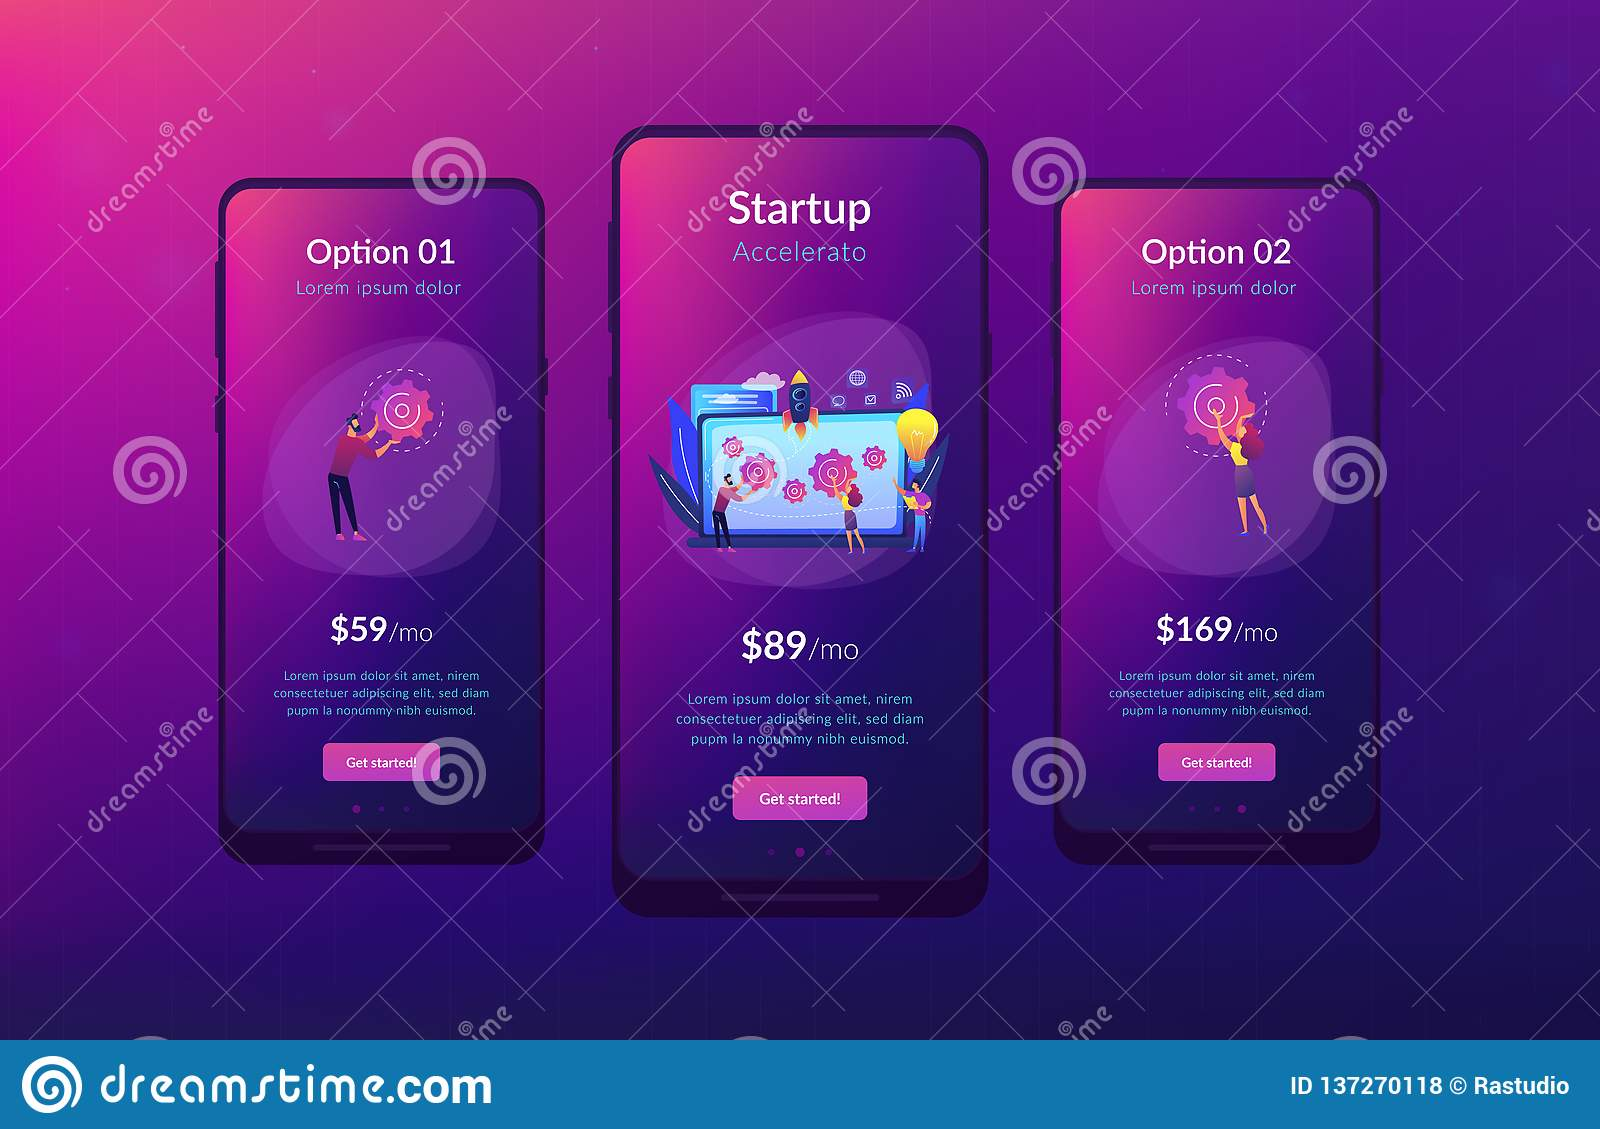 Startup Accelerator App Interface Template  Stock Vector